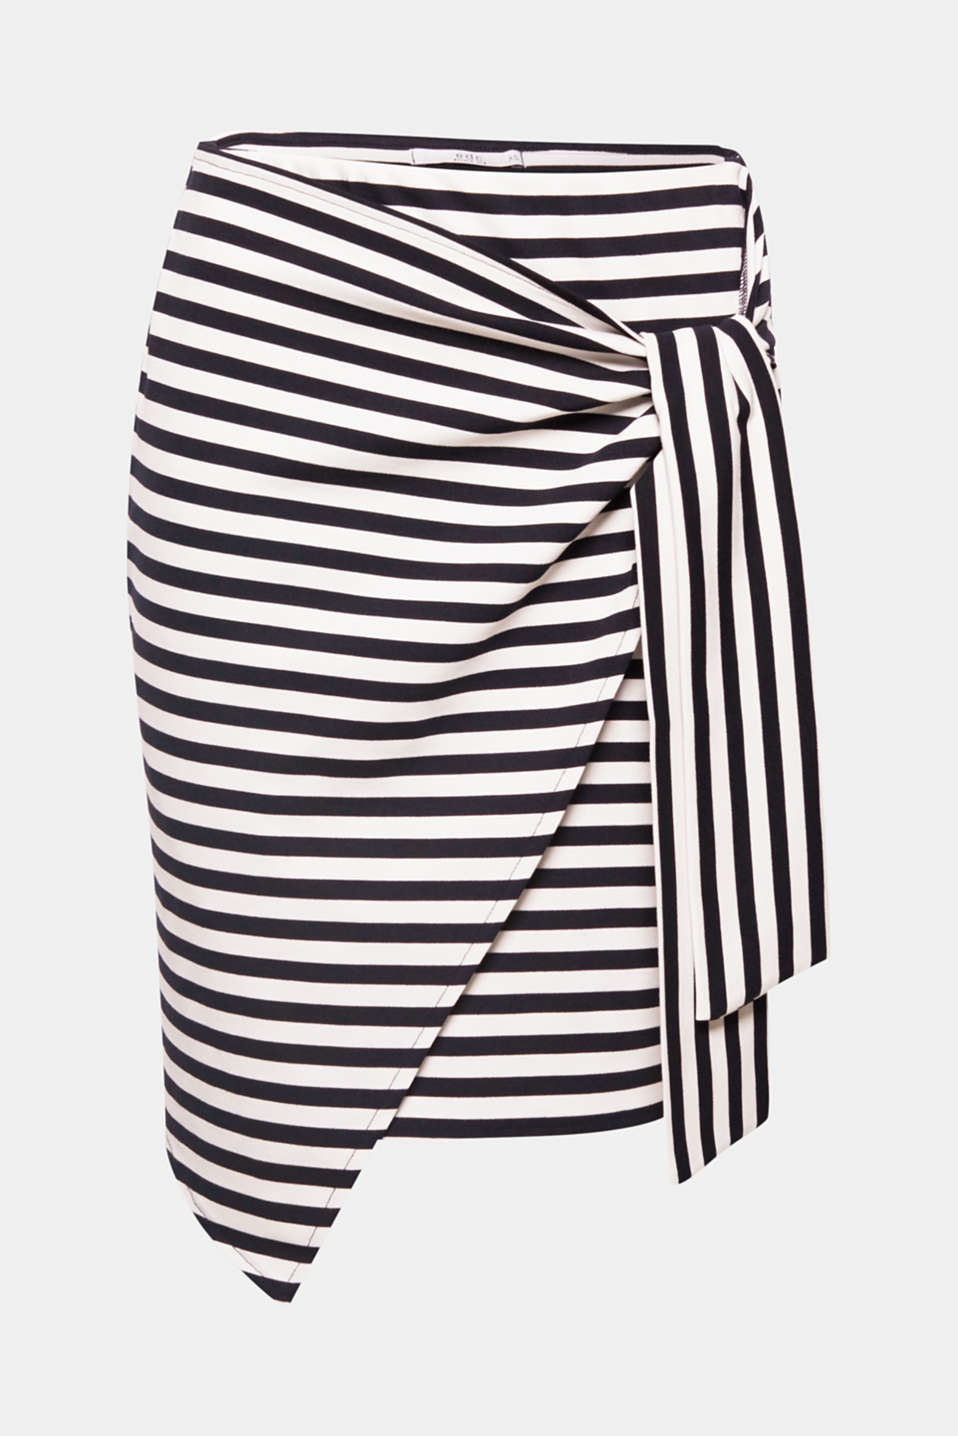 The combination of a modern wrap-over silhouette and two-tone horizontal stripes give this comfortable jersey skirt its fashionable look!